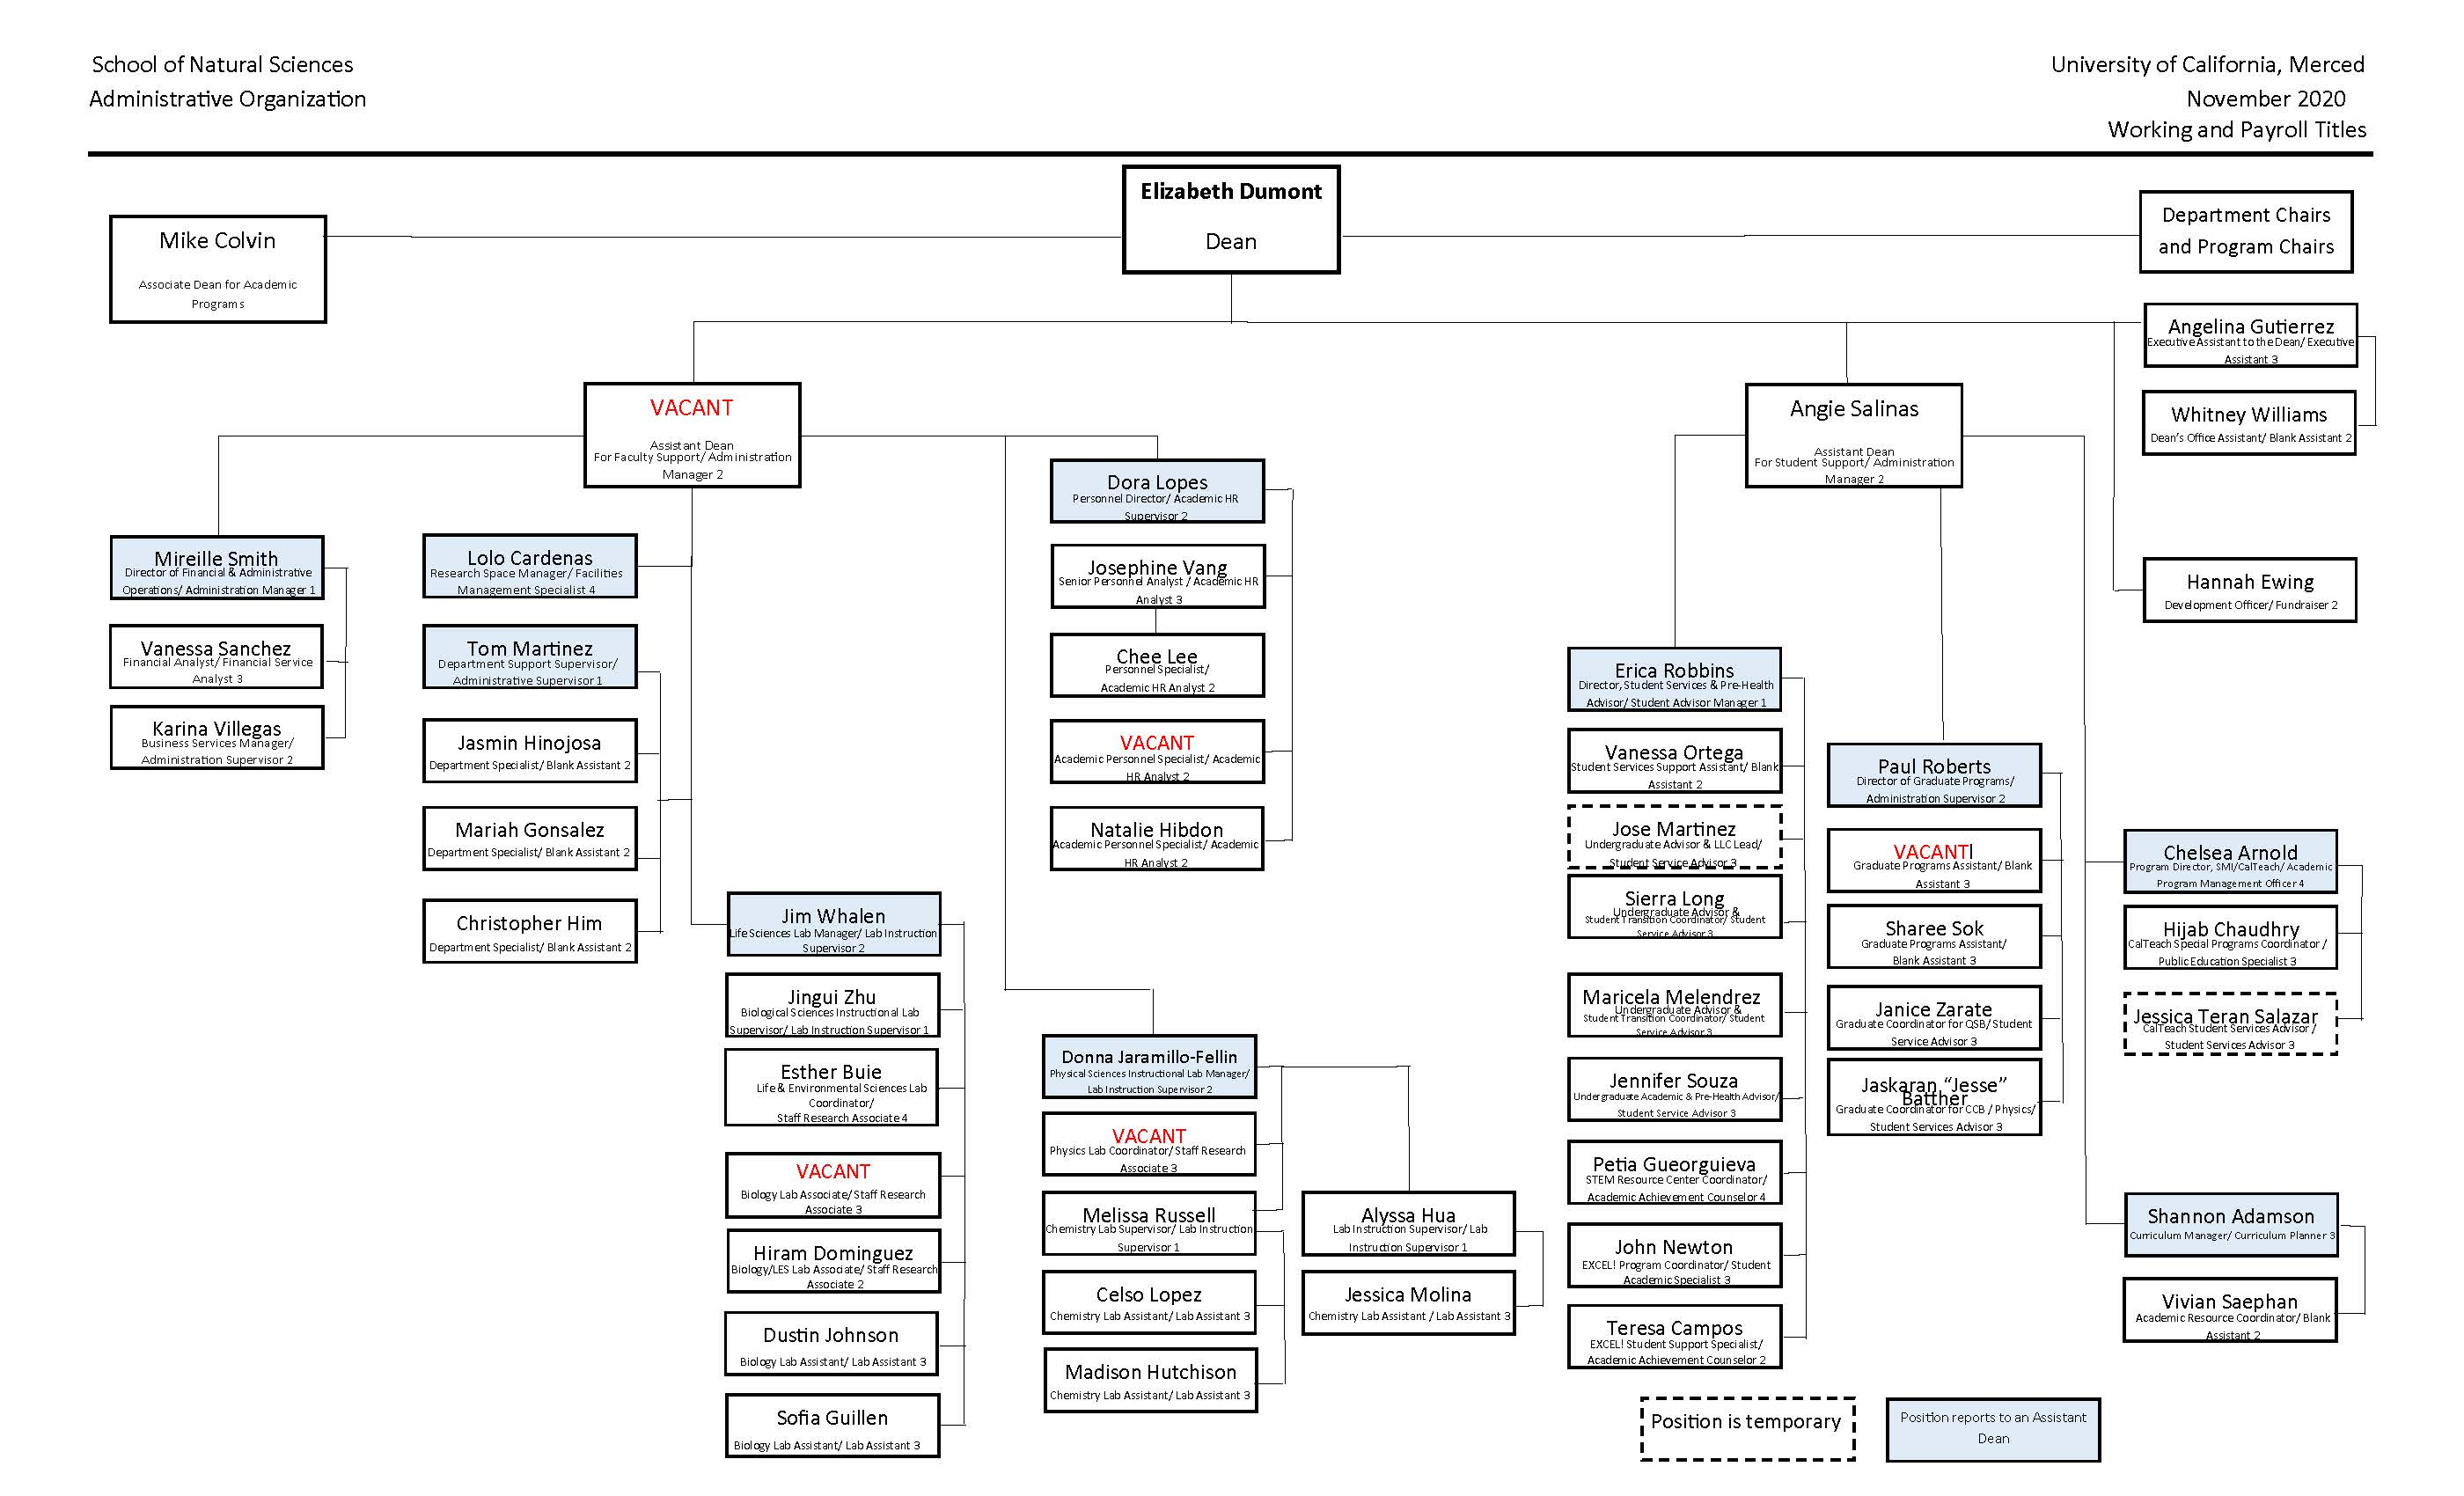 UC Merced School of Natural Sciences Organizational Chart